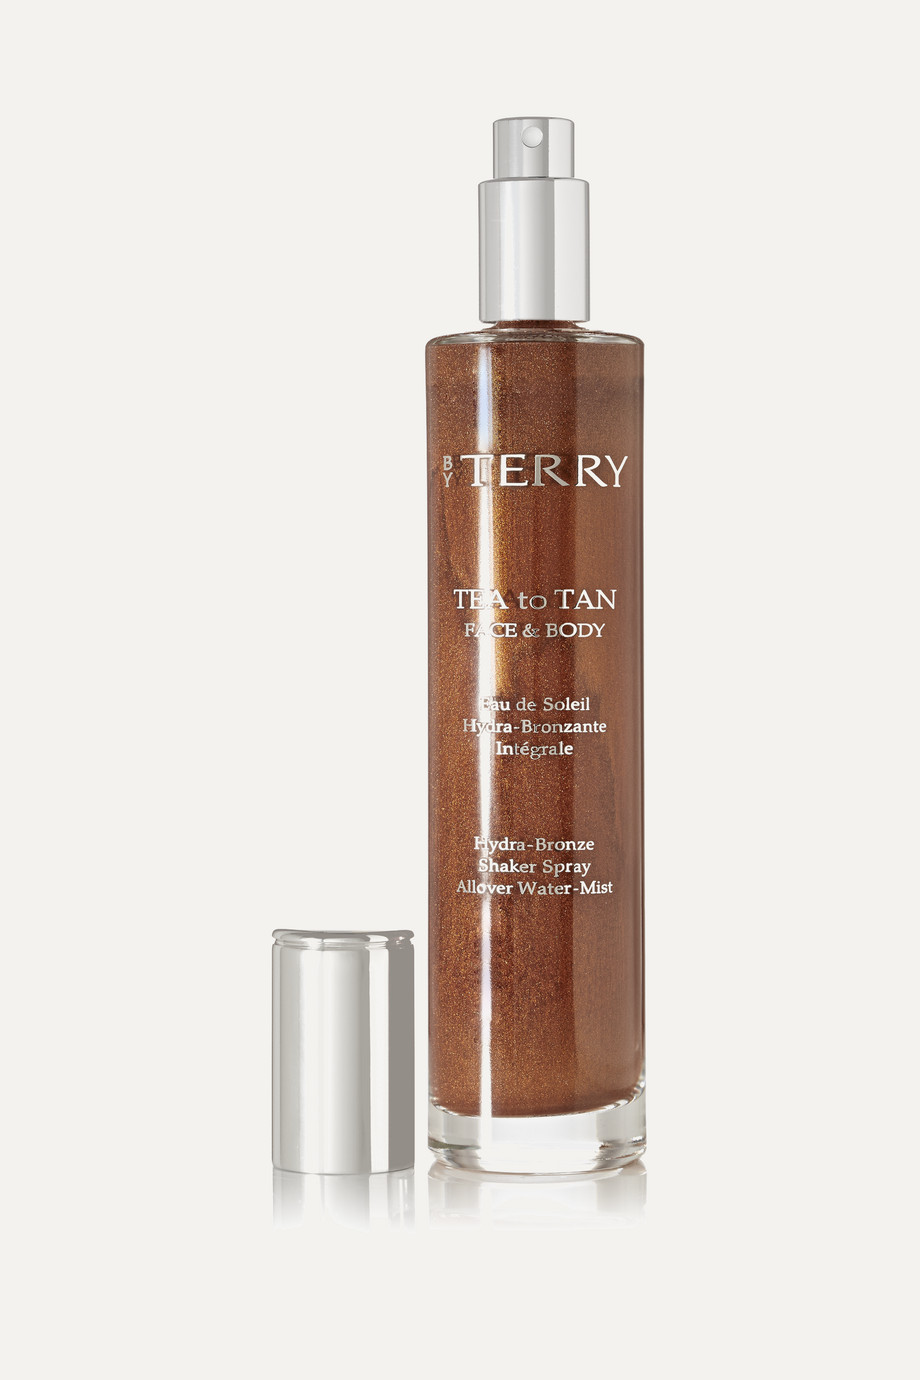 BY TERRY Tea to Tan Face & Body - 1 Summer Bronze, 100ml